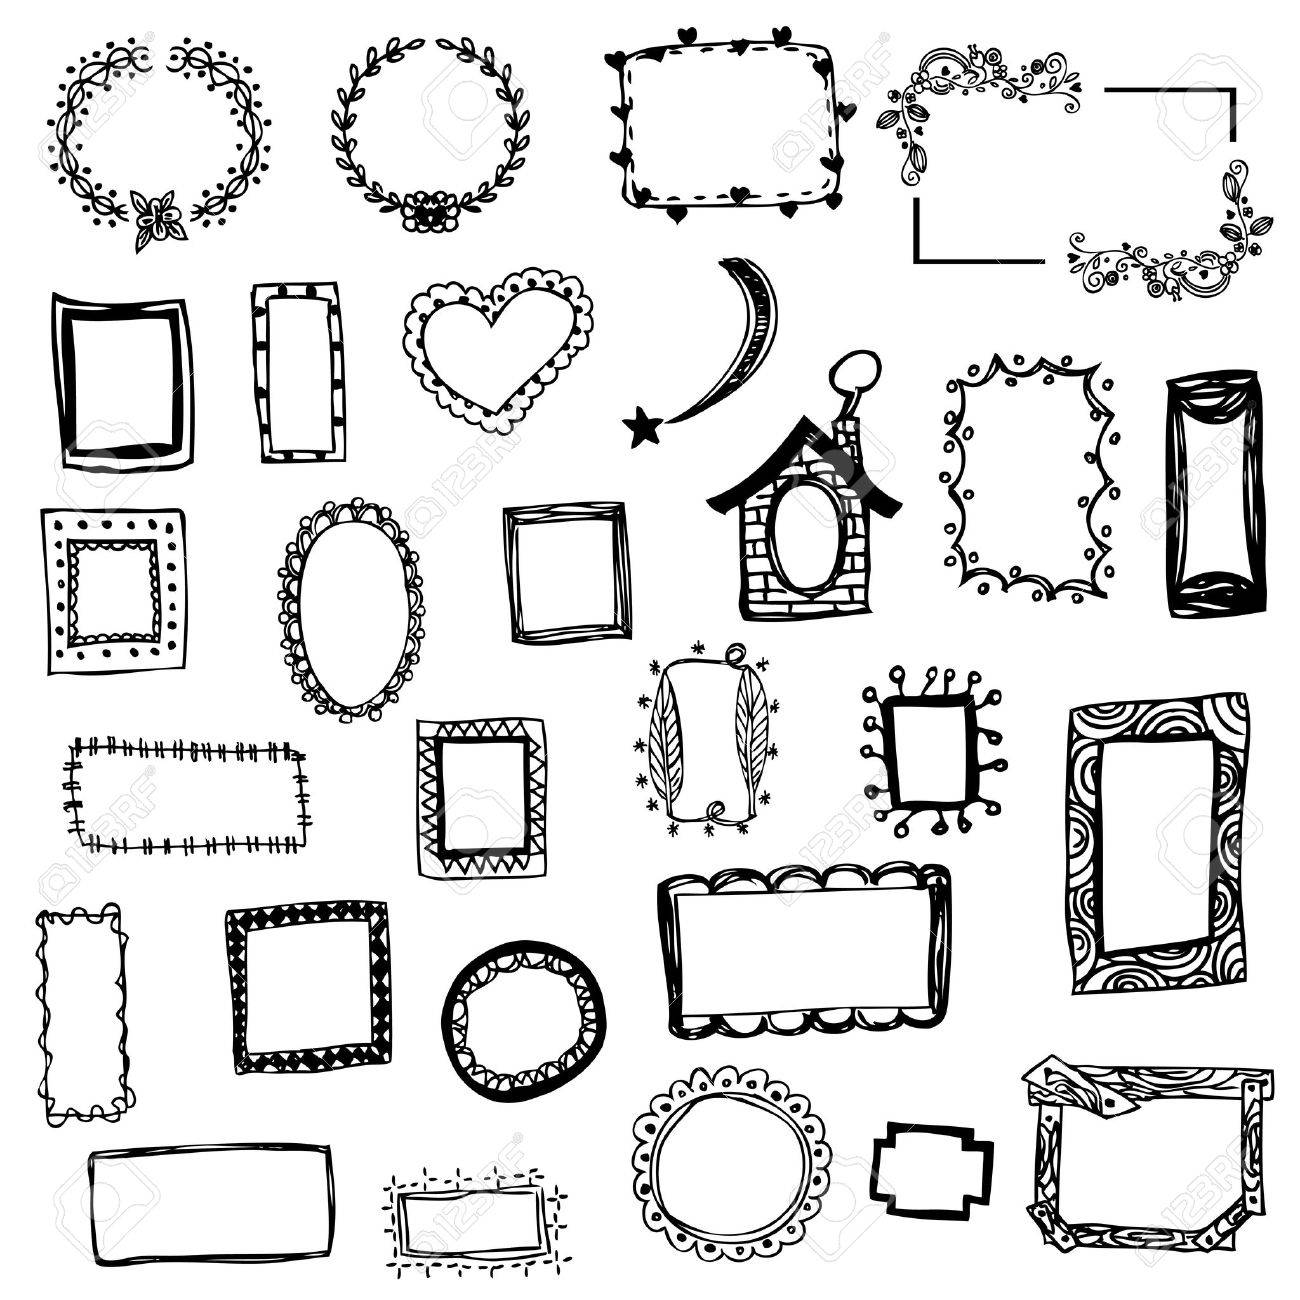 1300x1300 Free Hand Drawing Of Picture Frame Vector Illustration On White